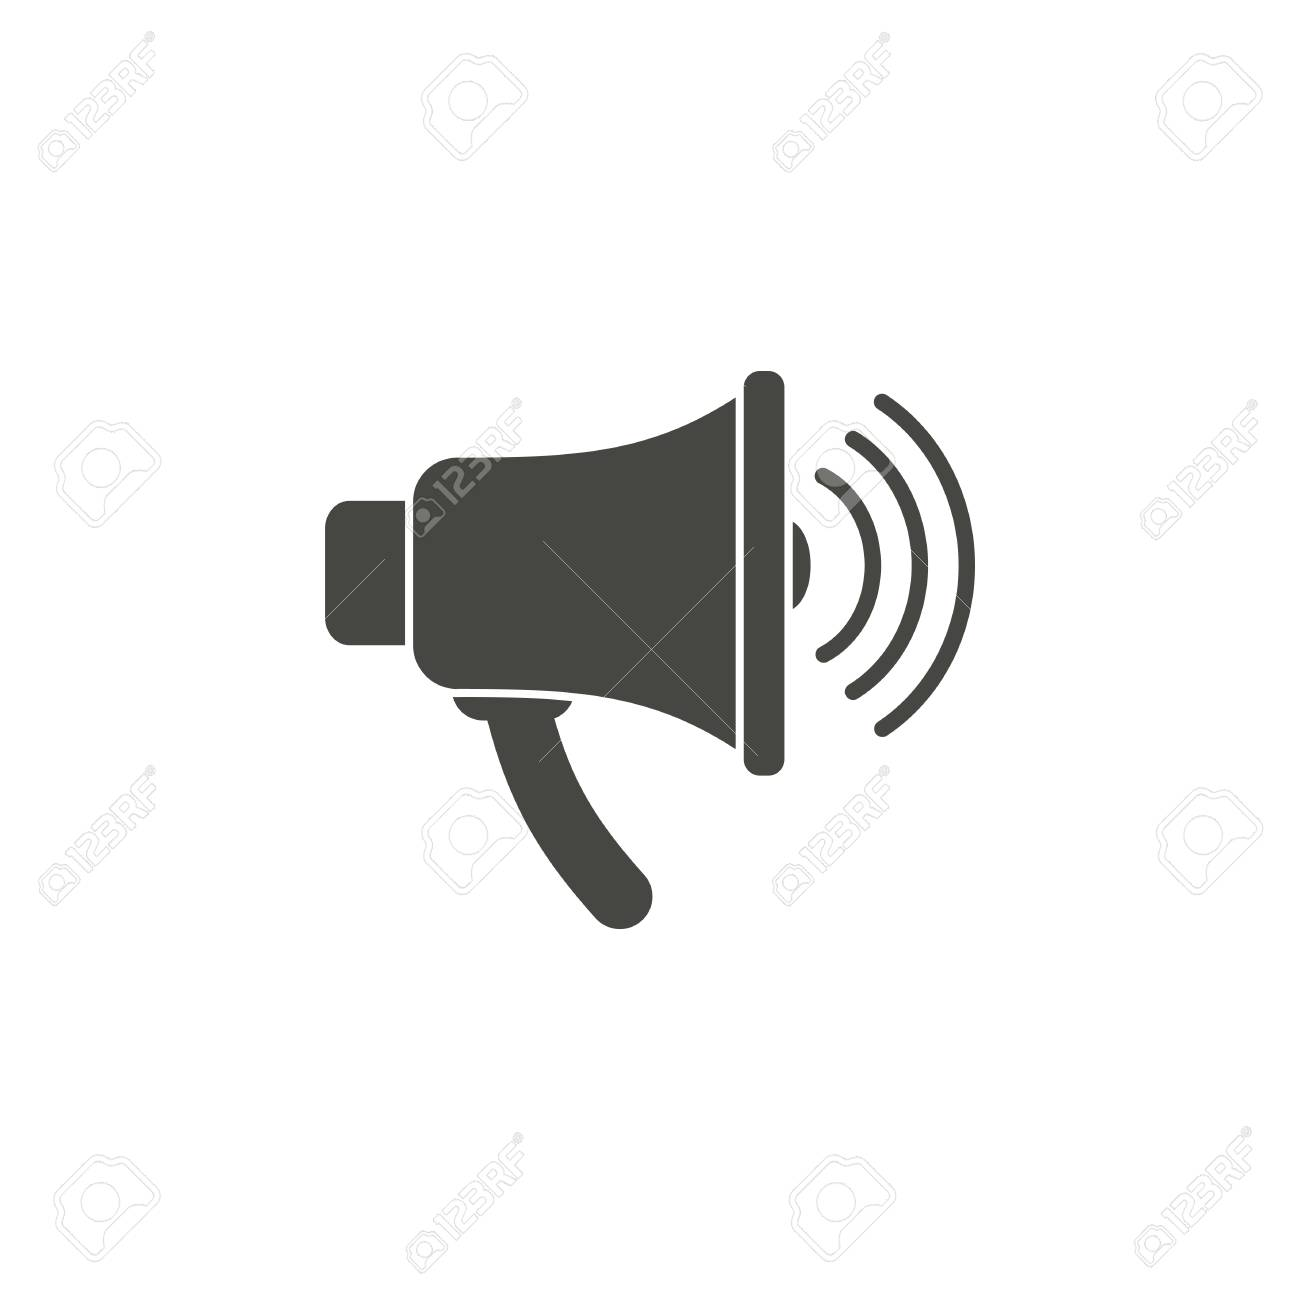 loudspeaker vector icon in black on a white background royalty free cliparts vectors and stock illustration image 45504305 loudspeaker vector icon in black on a white background